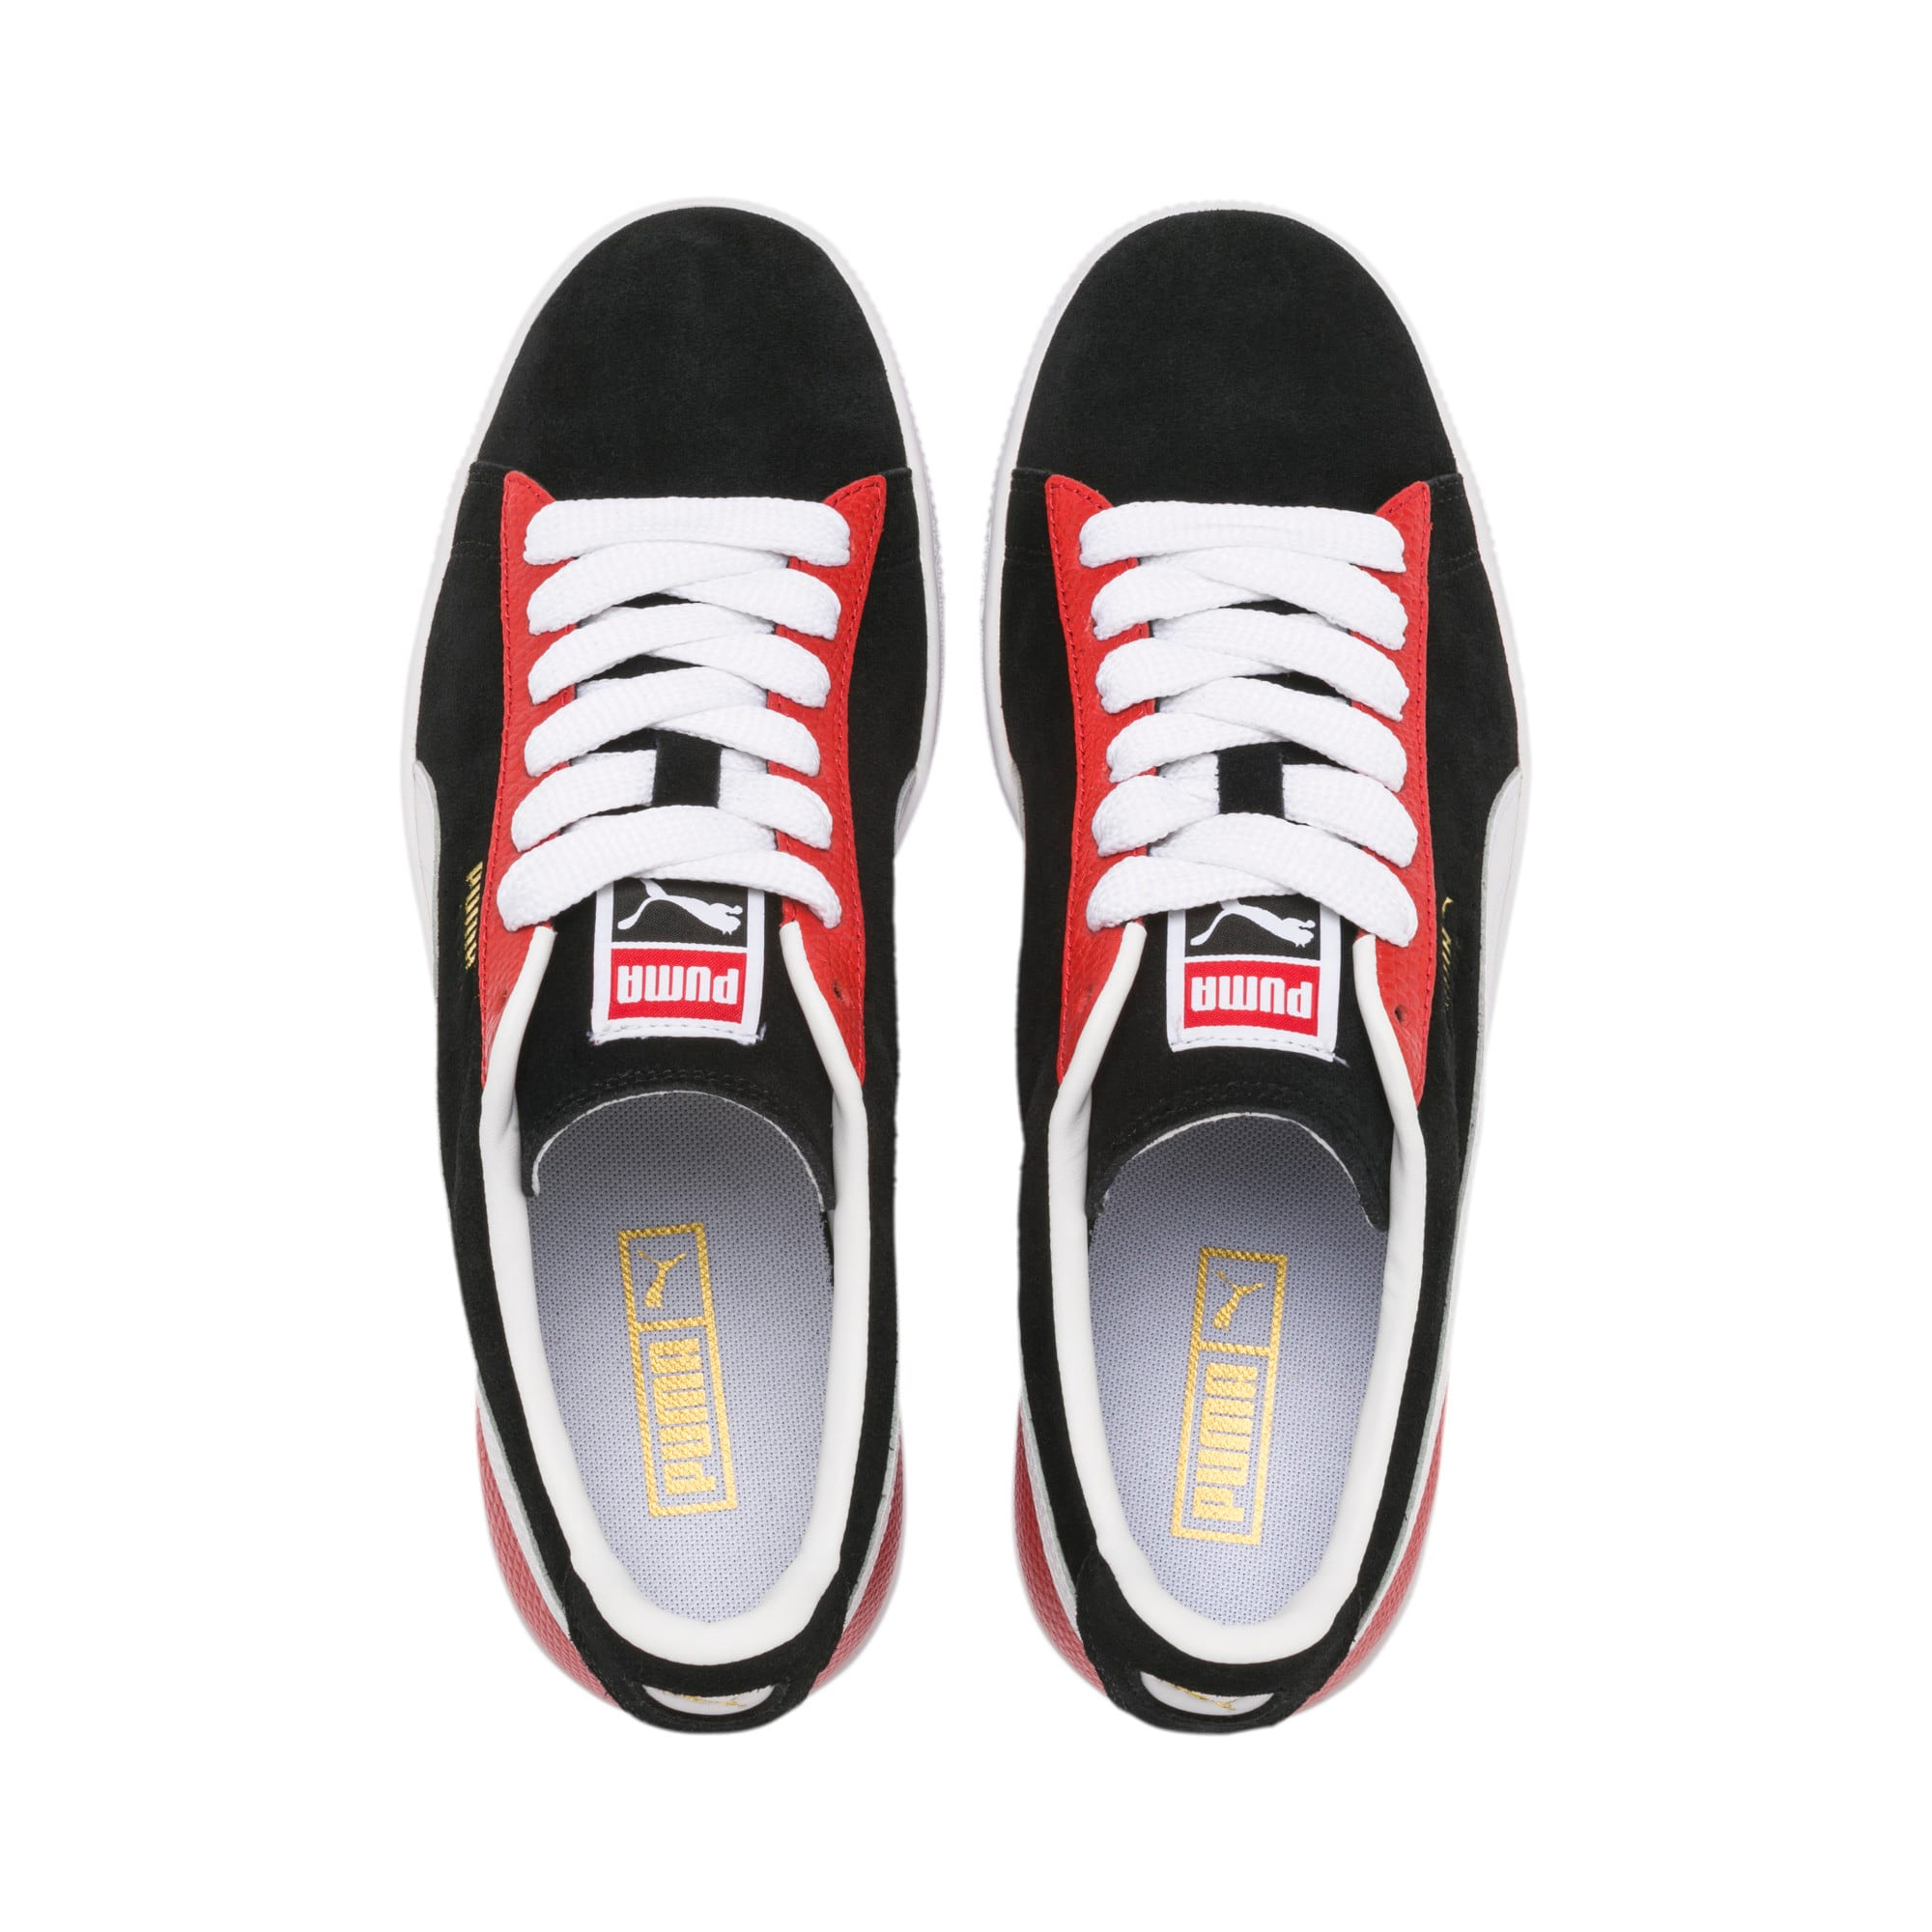 Thumbnail 7 of Suede Classic Block Sneakers, Black-High Risk Red-White, medium